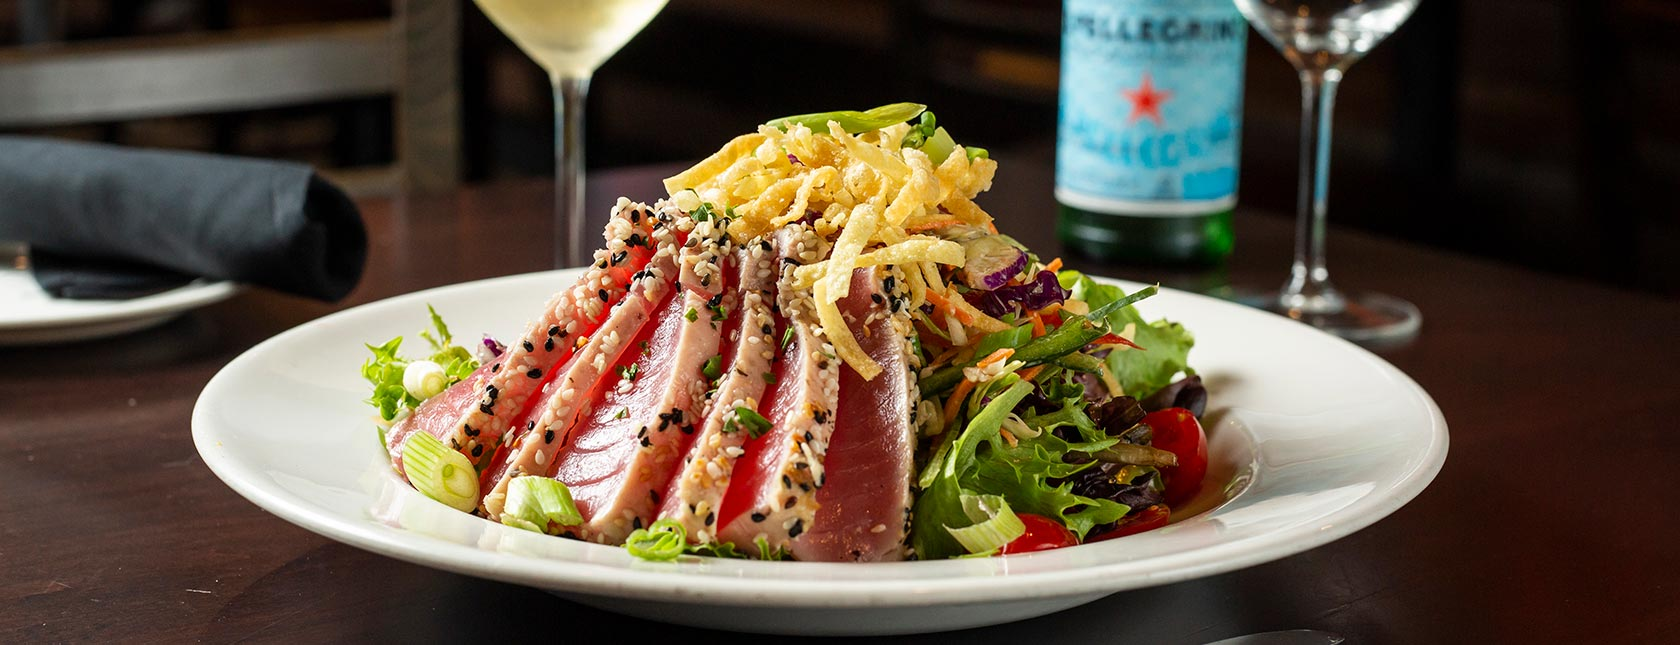 Seared tuna sliced and arranged on salad greens with beverages in background